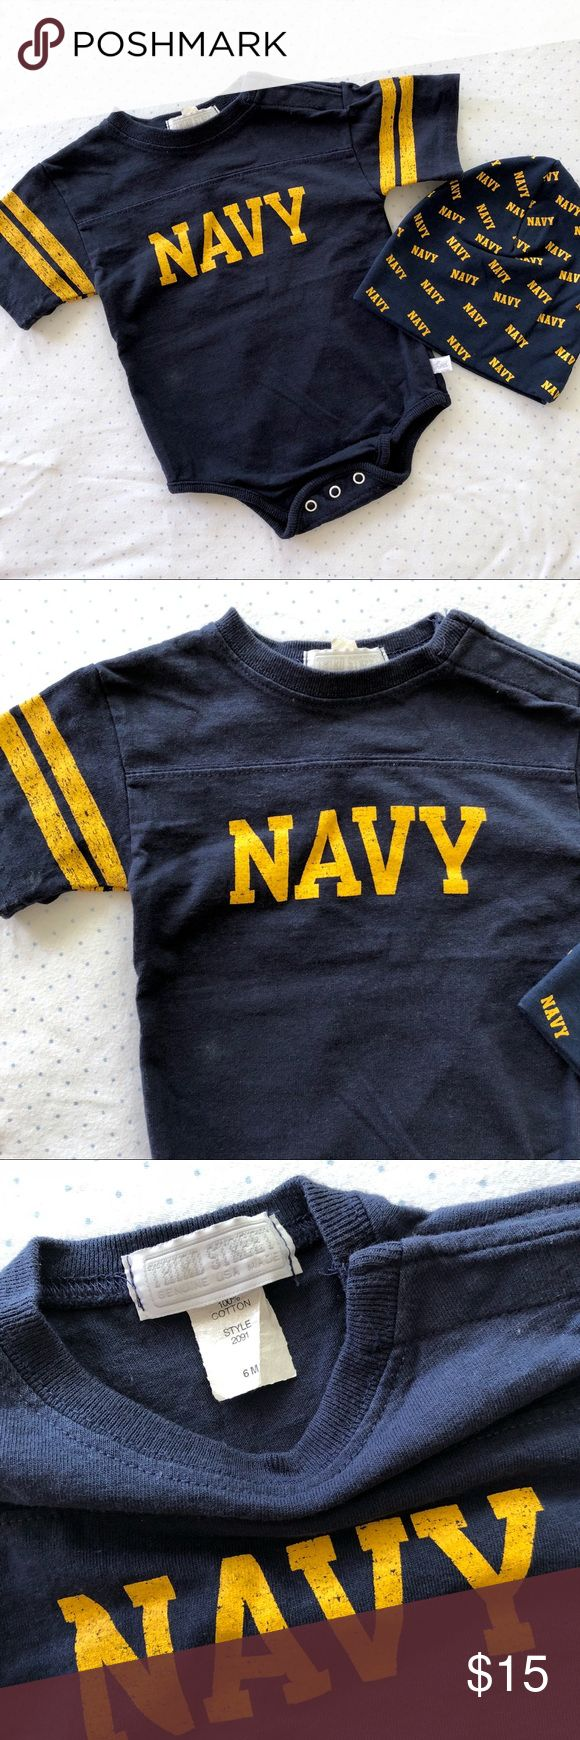 US Navy Baby Onesie and Beanie Set US Navy Baby Onesie and Beanie set by Thirst Street. Only used once. Dark blue color size 6m. Comes from a smoke free pet free home. bundle with my other items to save money, going minimalist taking most offers. third street One Pieces